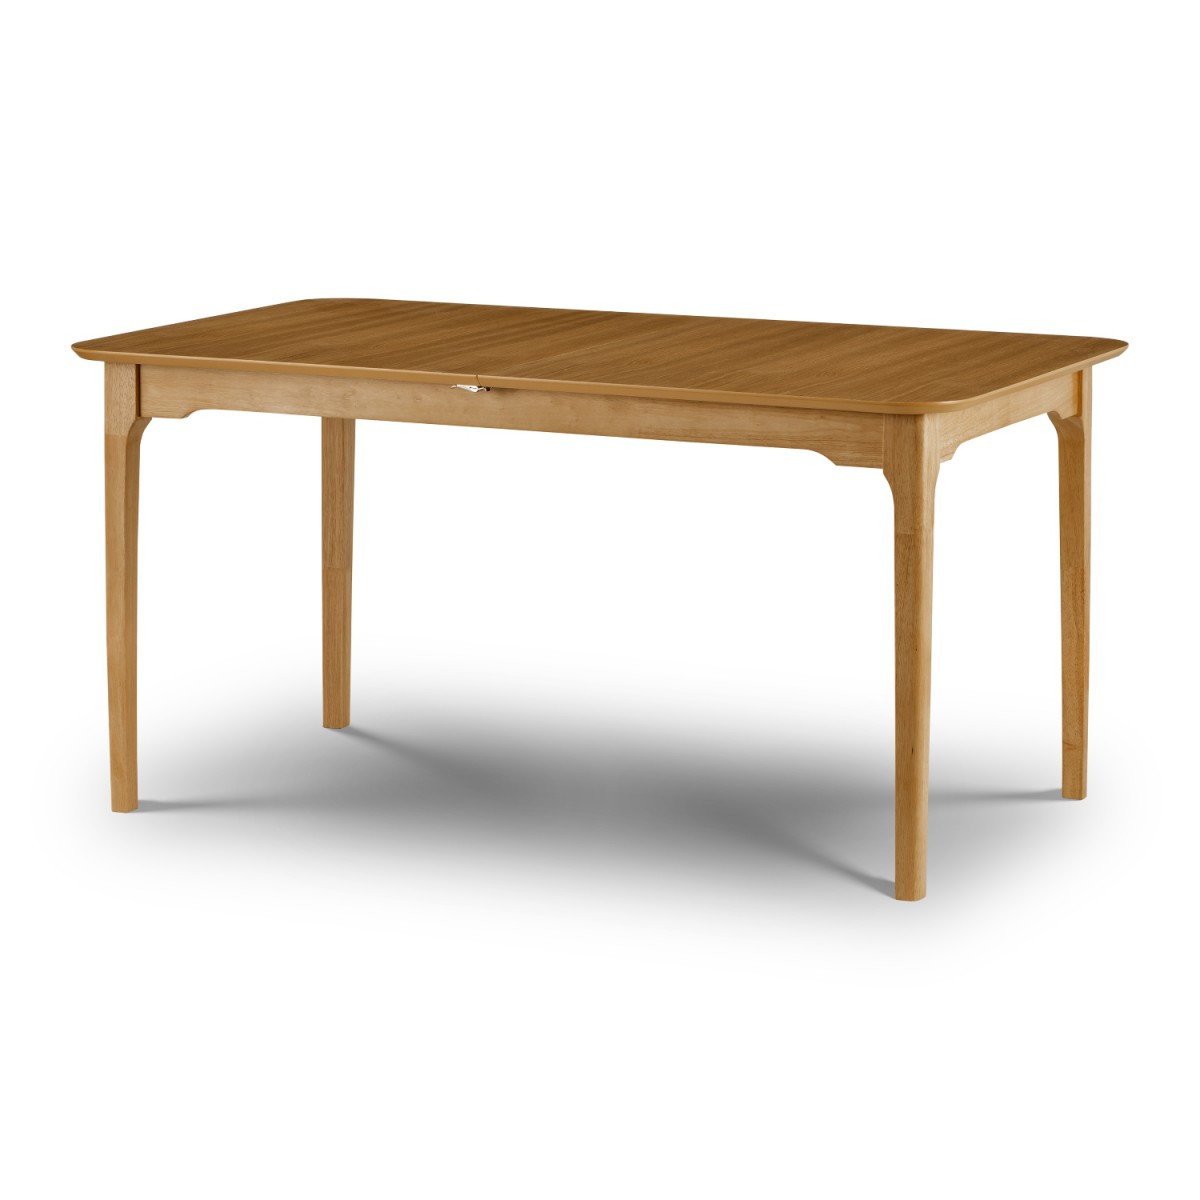 https://www.firstfurniture.co.uk/pub/media/catalog/product/j/u/julian_bowen_ibsen_dining_table_IBS001_2-1200x1200.jpg